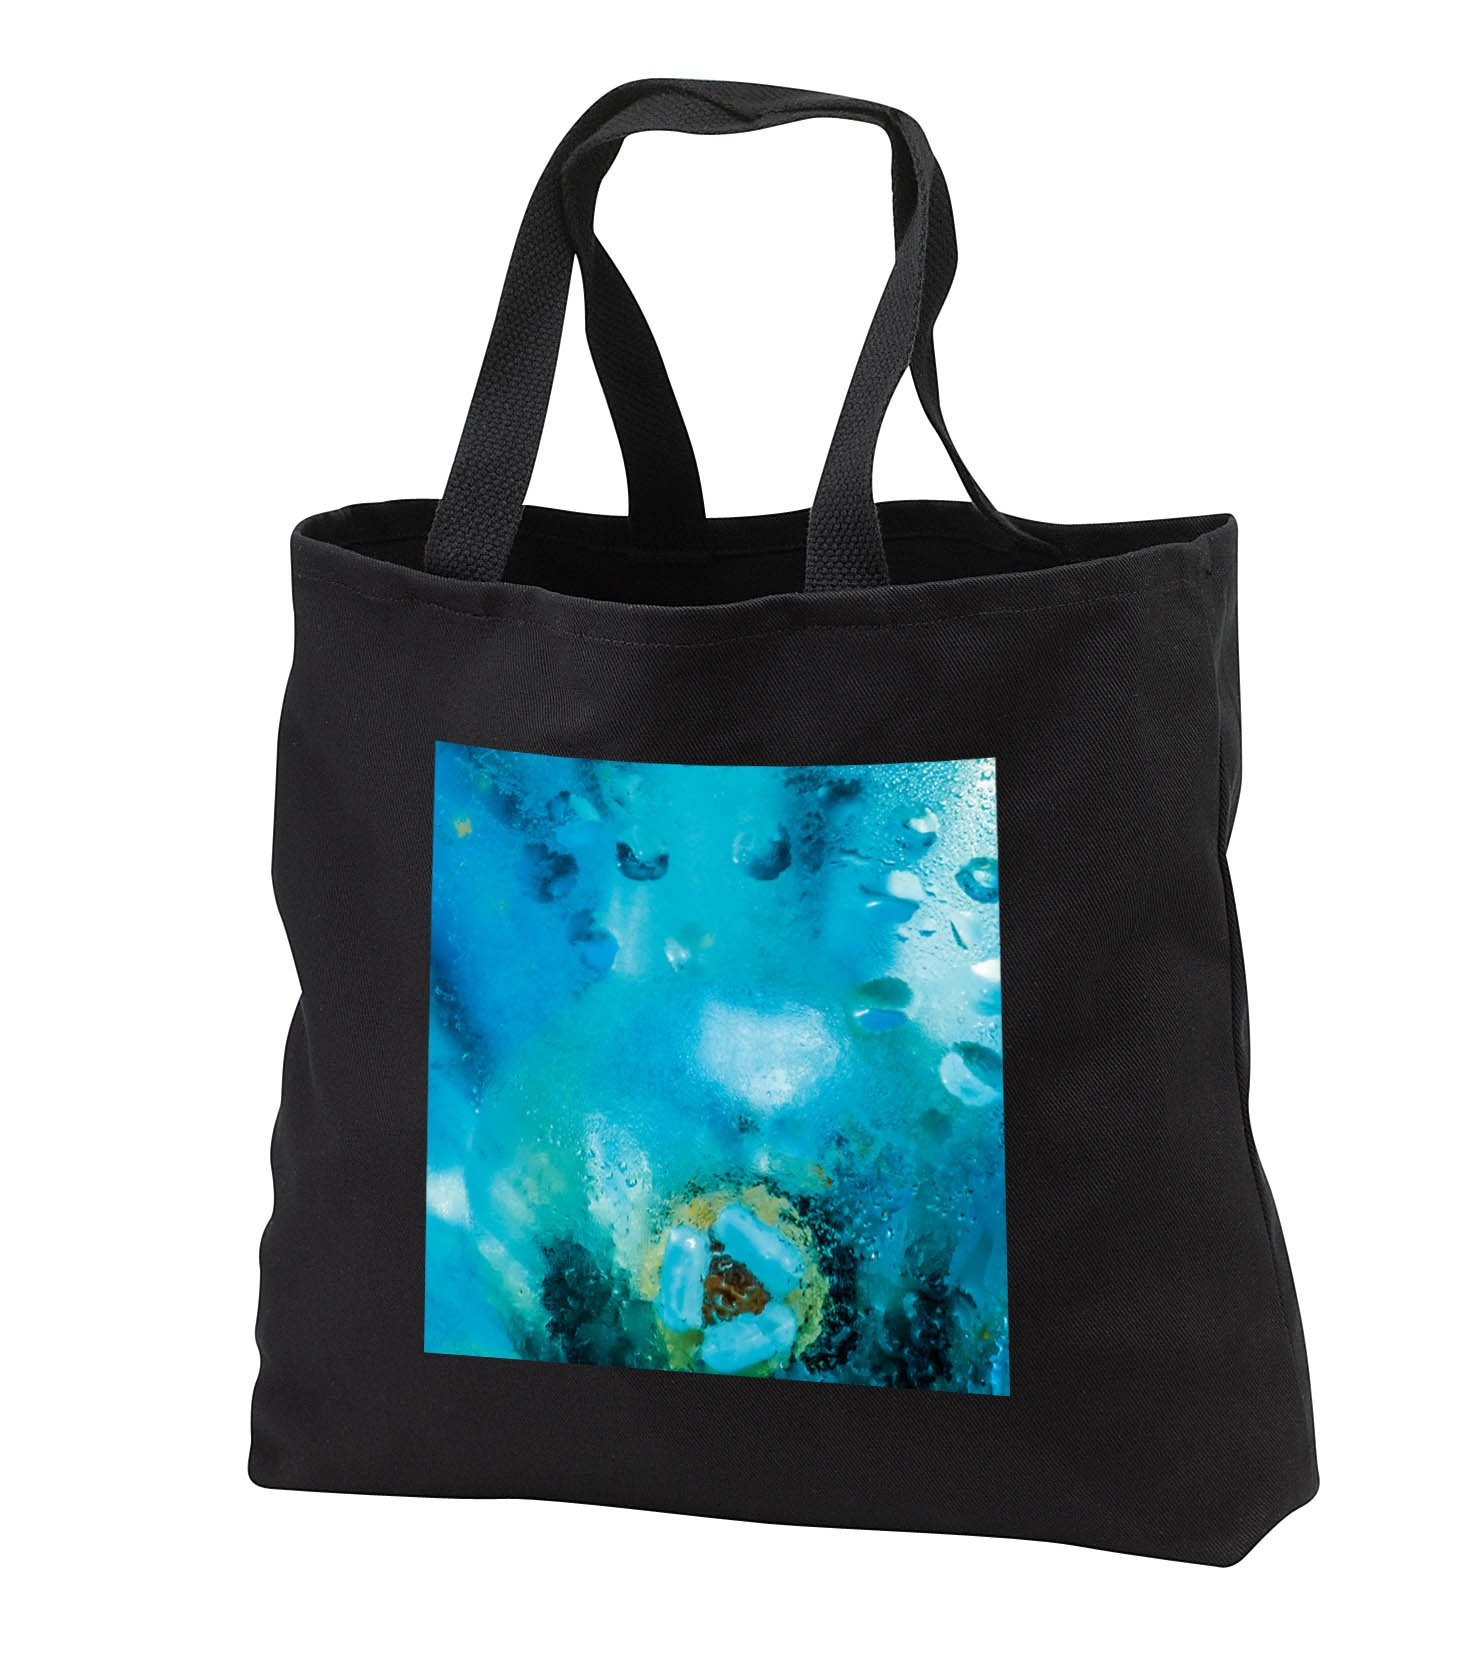 Alexis Photography - Abstracts - Image of Colorful misted glass, low energy light bulb visible - Tote Bags - Black Tote Bag JUMBO 20w x 15h x 5d (tb_283998_3)